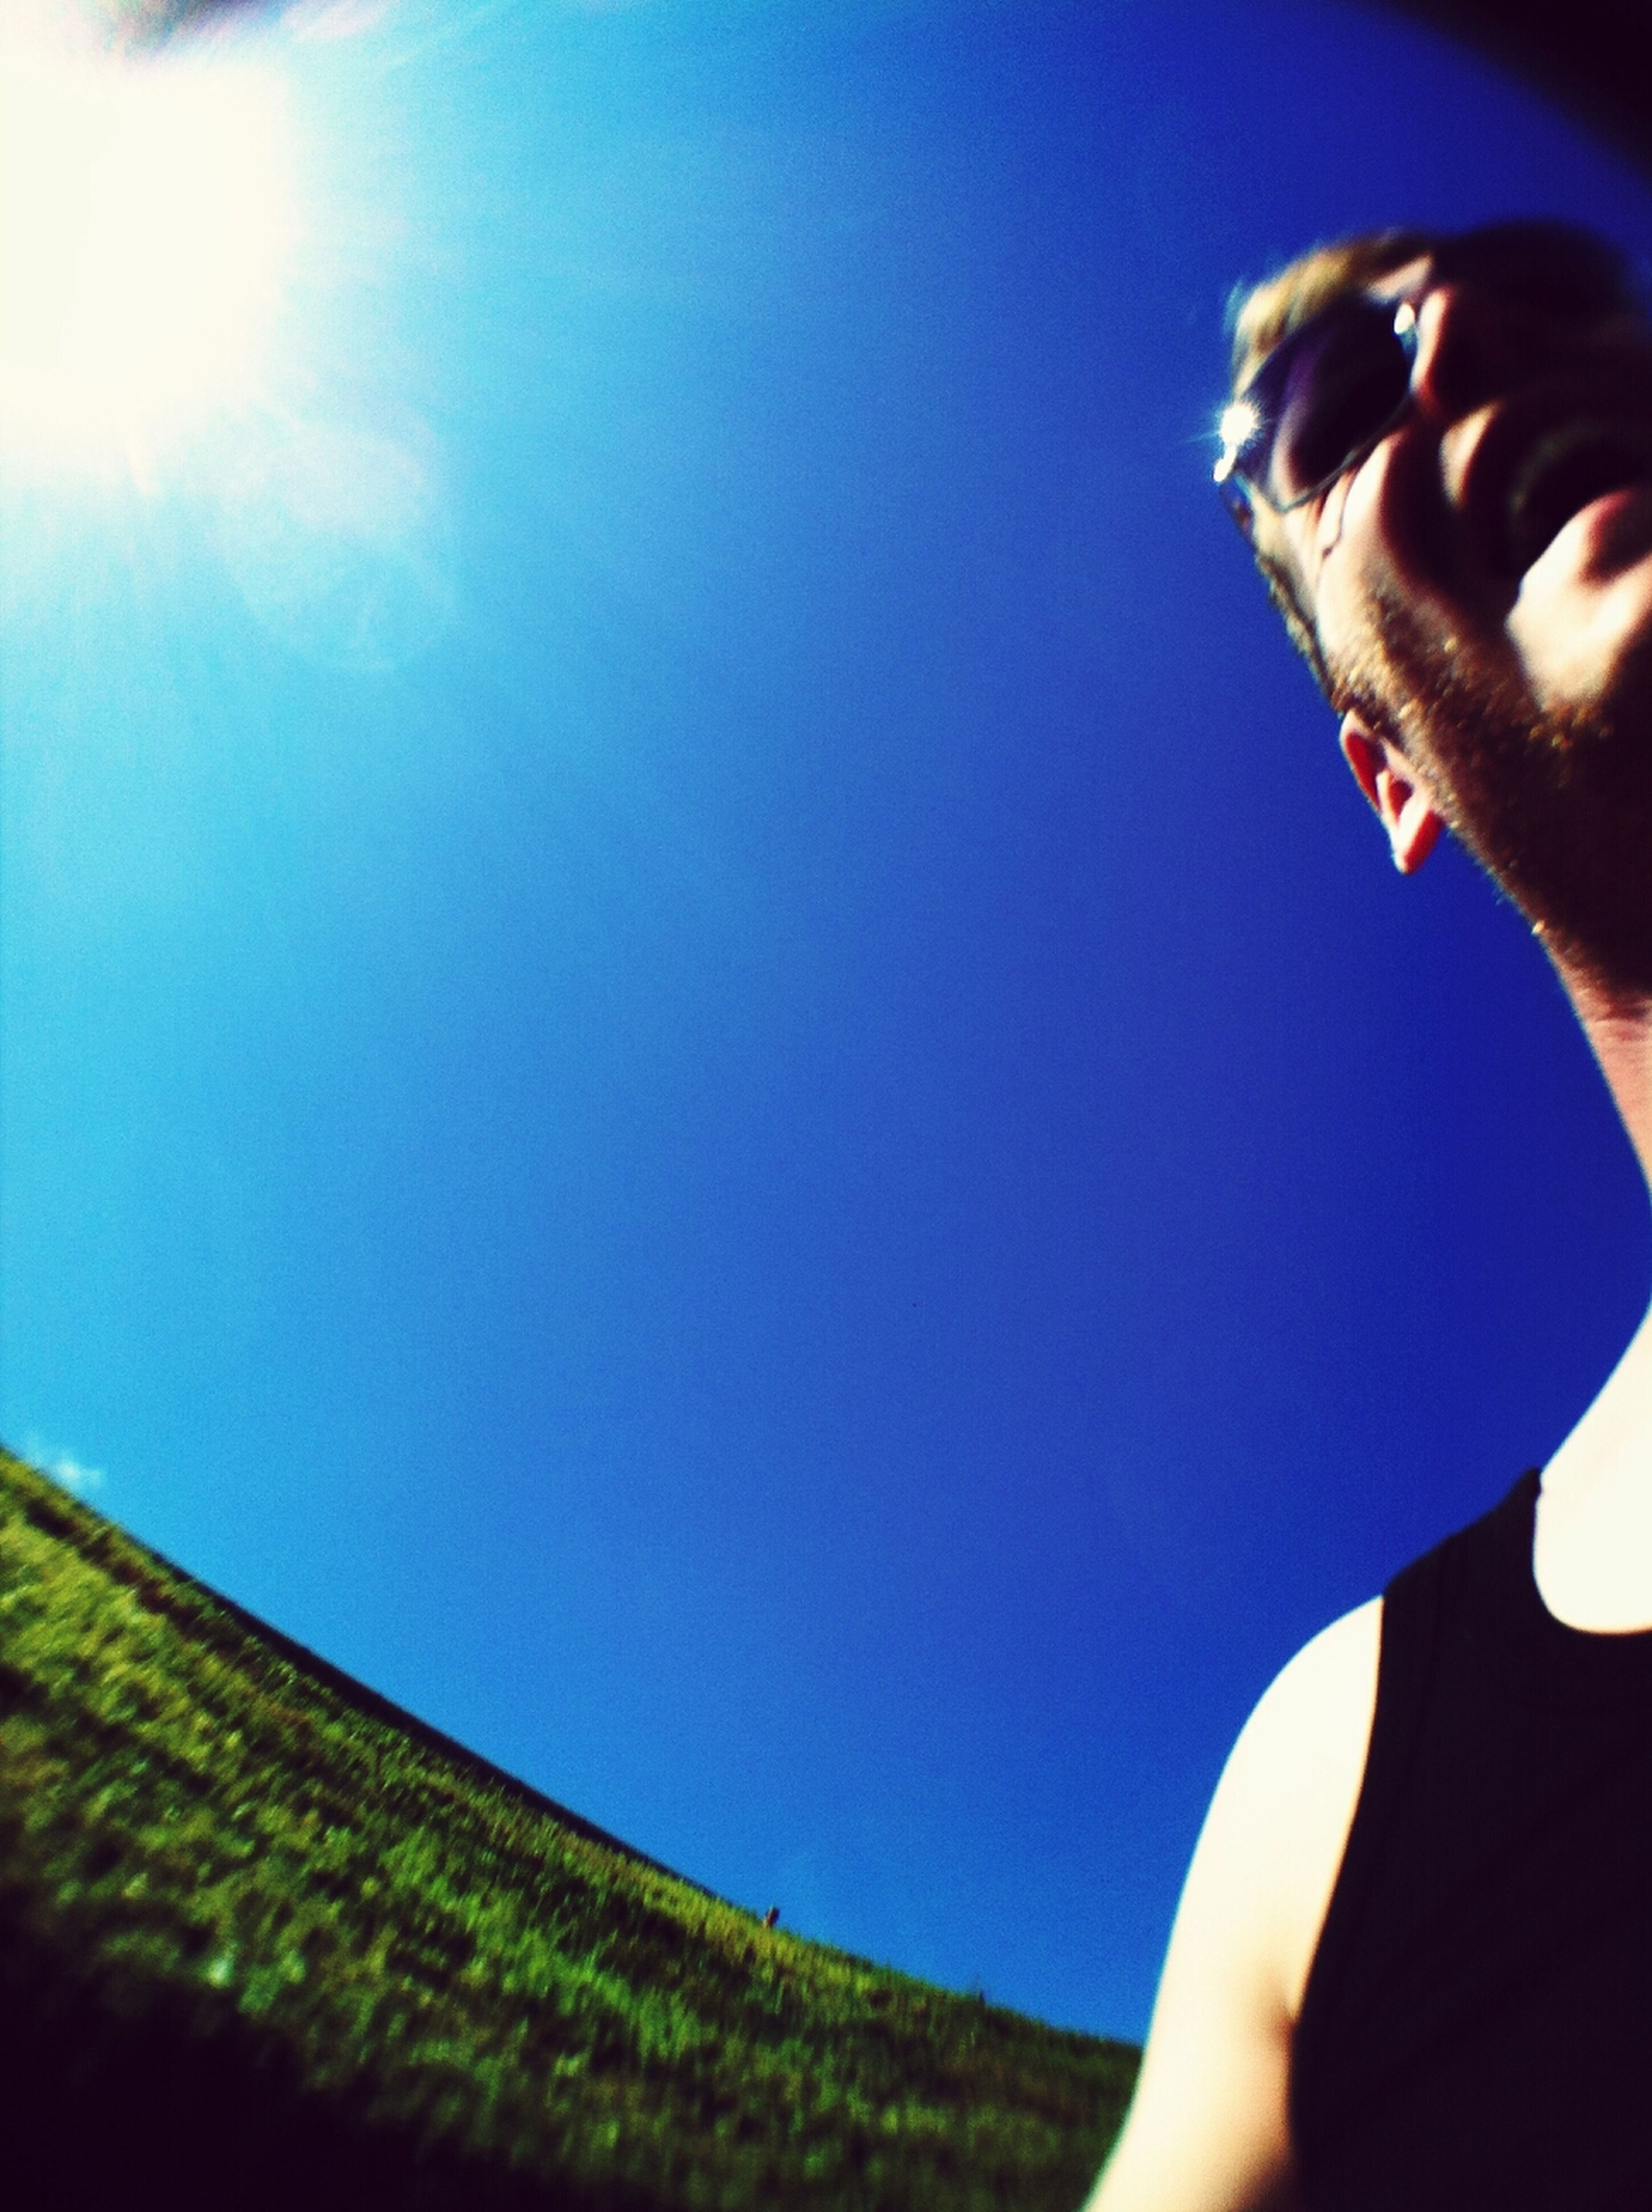 blue, person, part of, clear sky, cropped, lifestyles, personal perspective, leisure activity, unrecognizable person, sky, low angle view, copy space, sunlight, human finger, men, low section